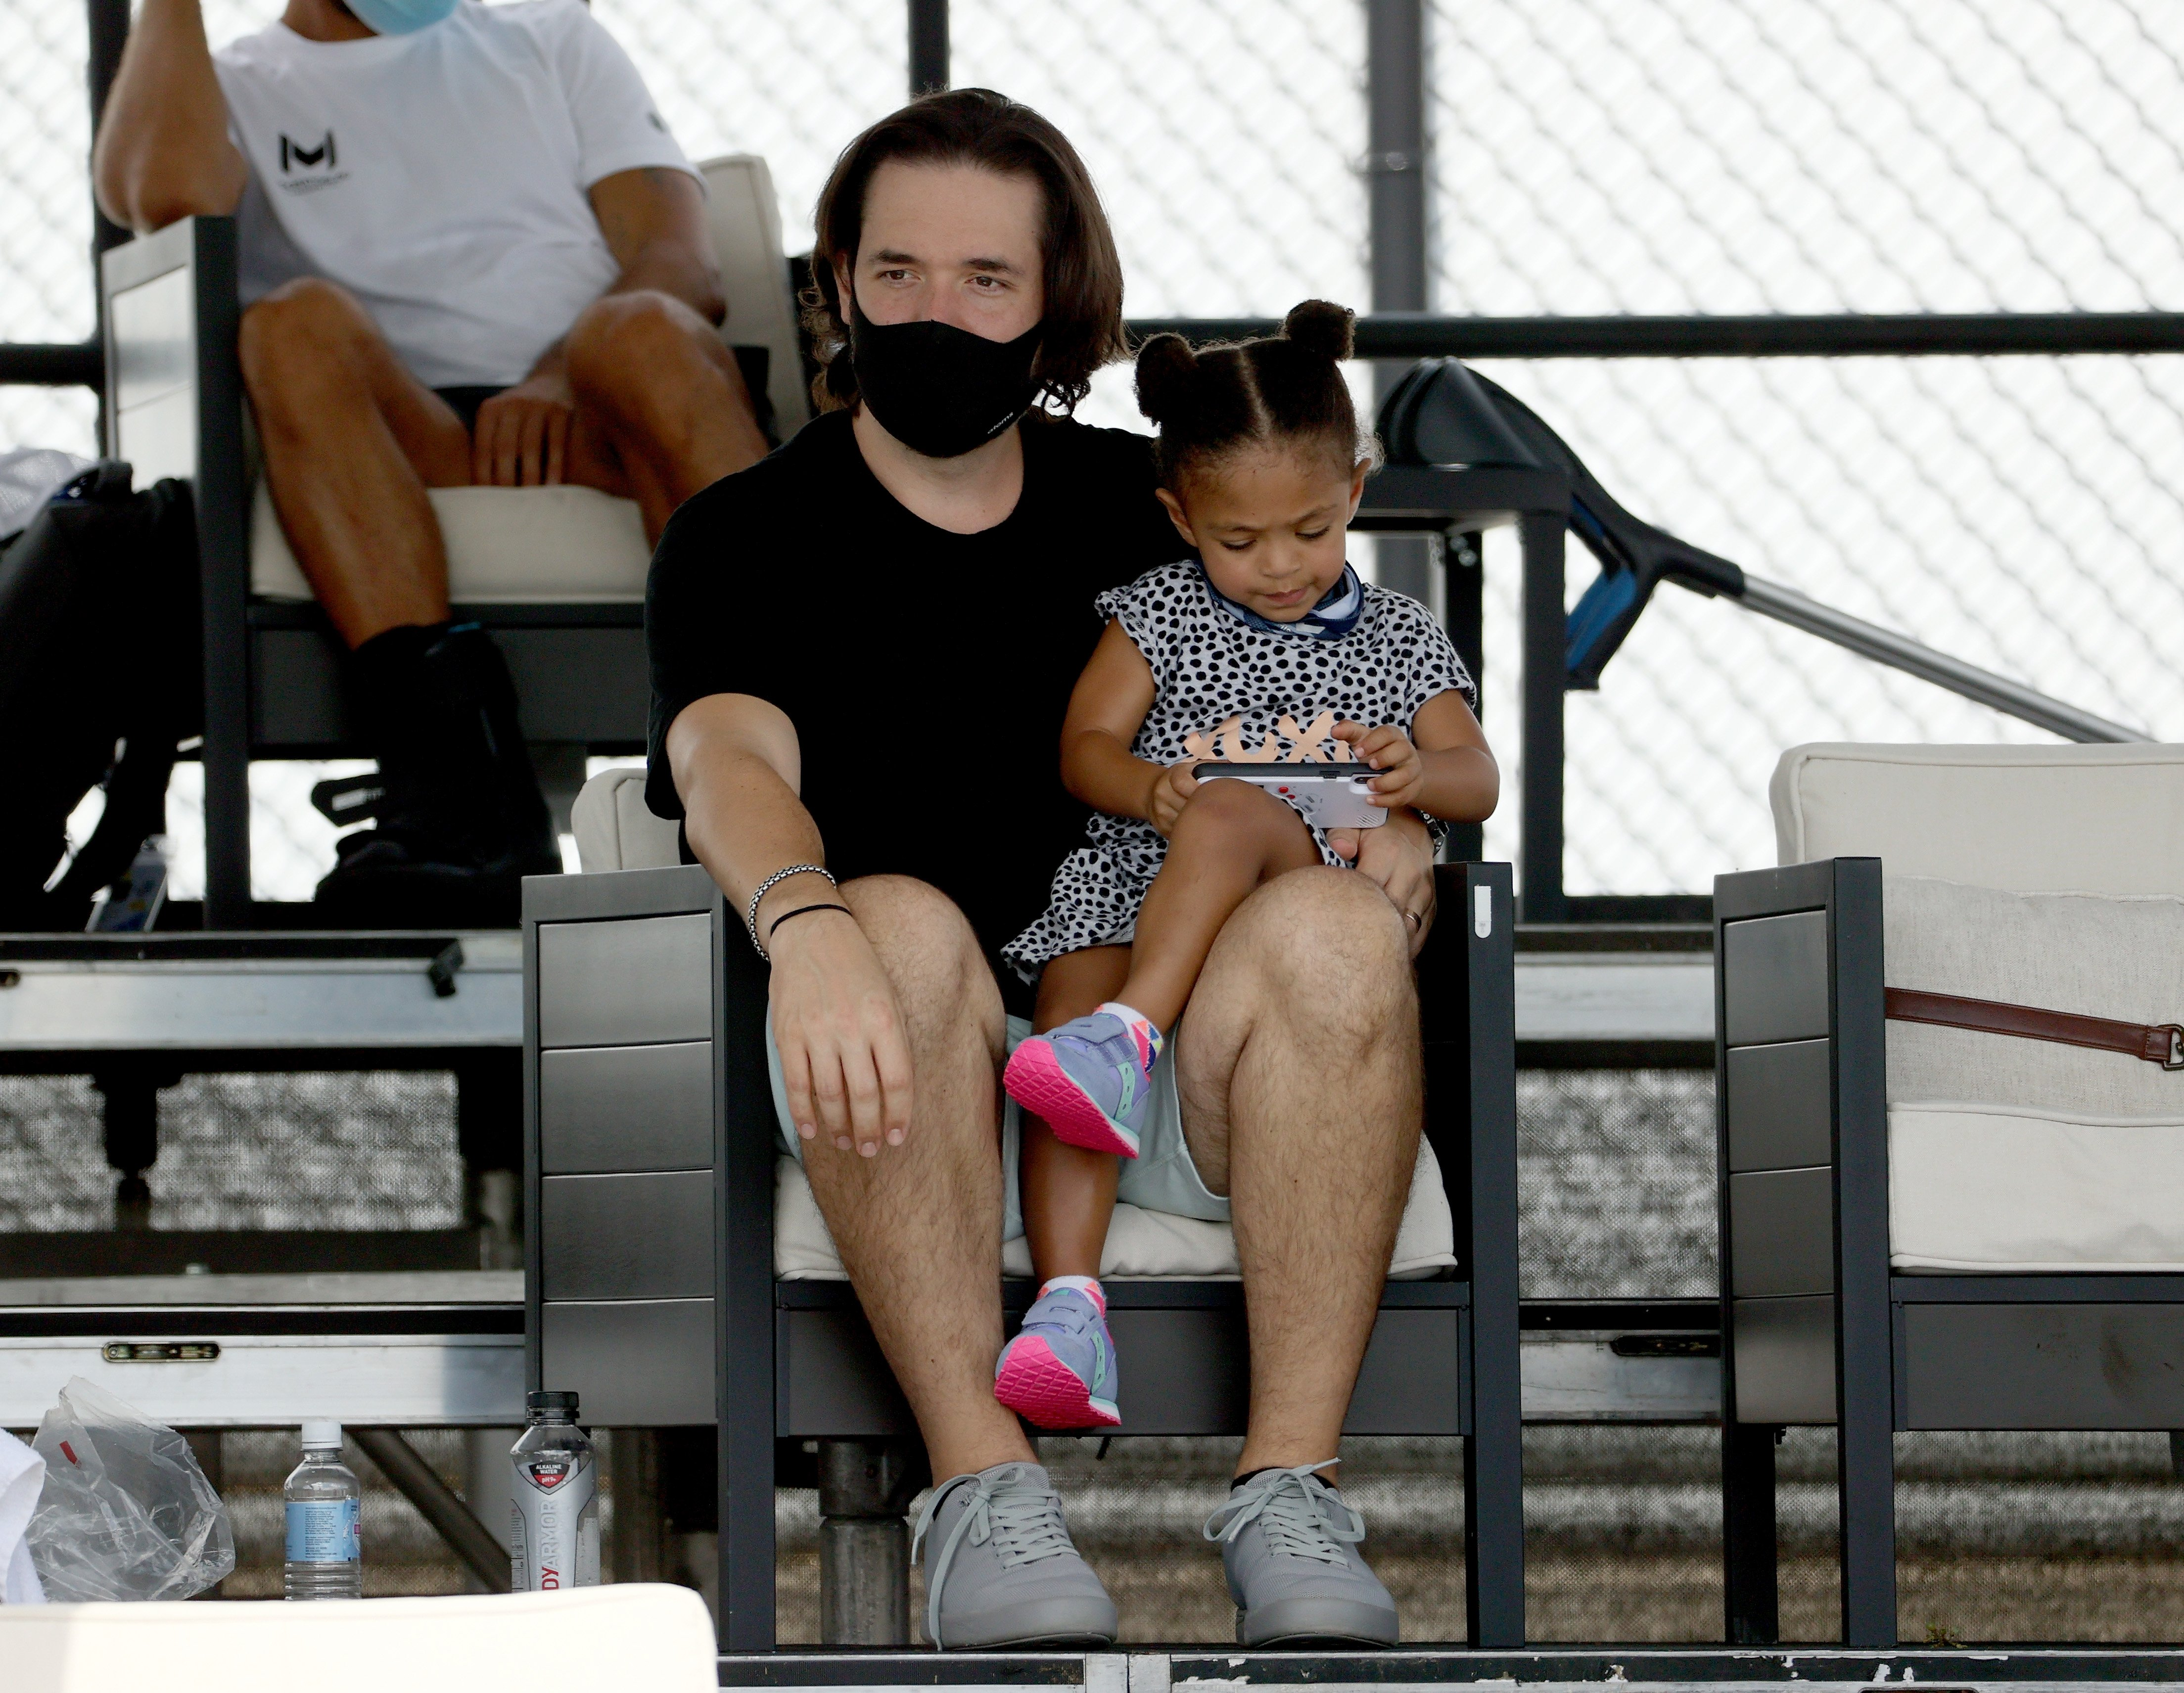 Serena Williams' husband, Alexis Ohanian, and daughter, Alexis Olympia Ohanian at the Top Seed Tennis Club on August 11, 2020 in Kentucky. | Photo: Getty Images